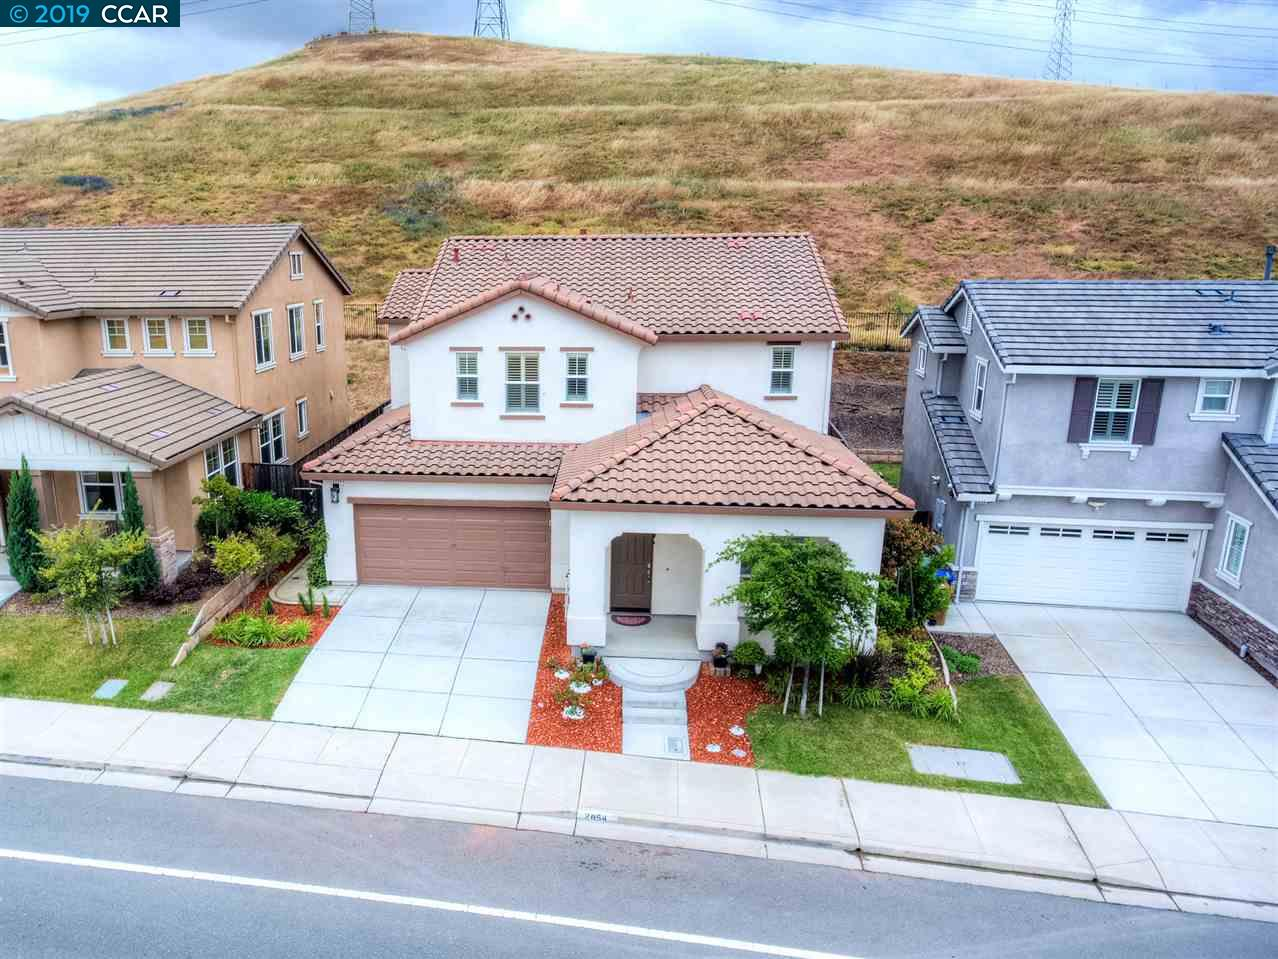 2054 Tomales Bay Dr, BAY POINT, CA 94565